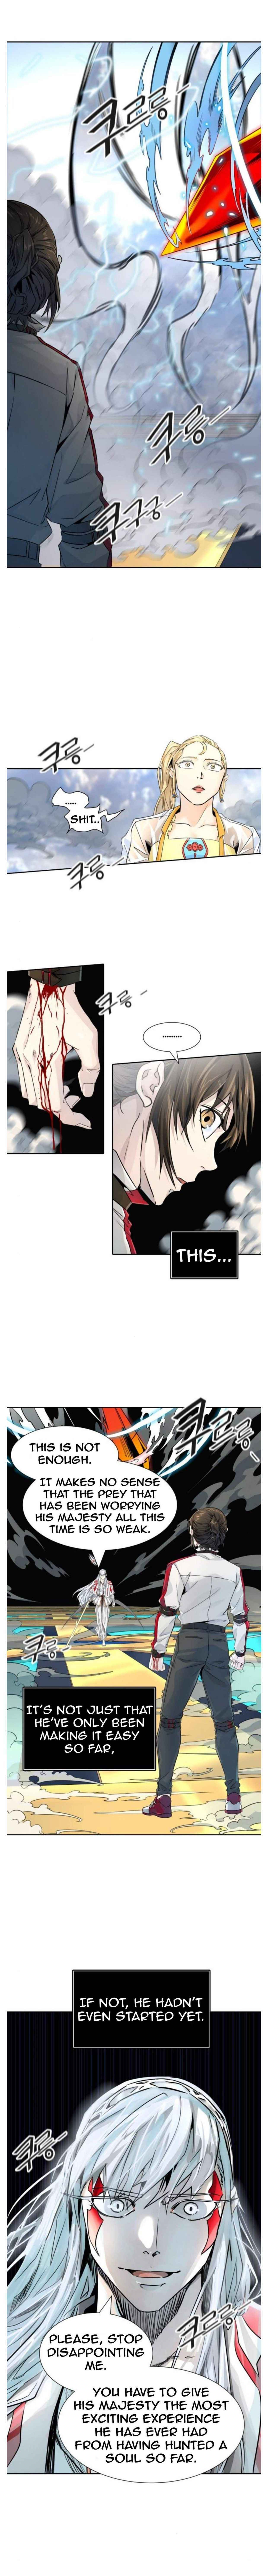 tower of god: Chapter 496 - Page 19